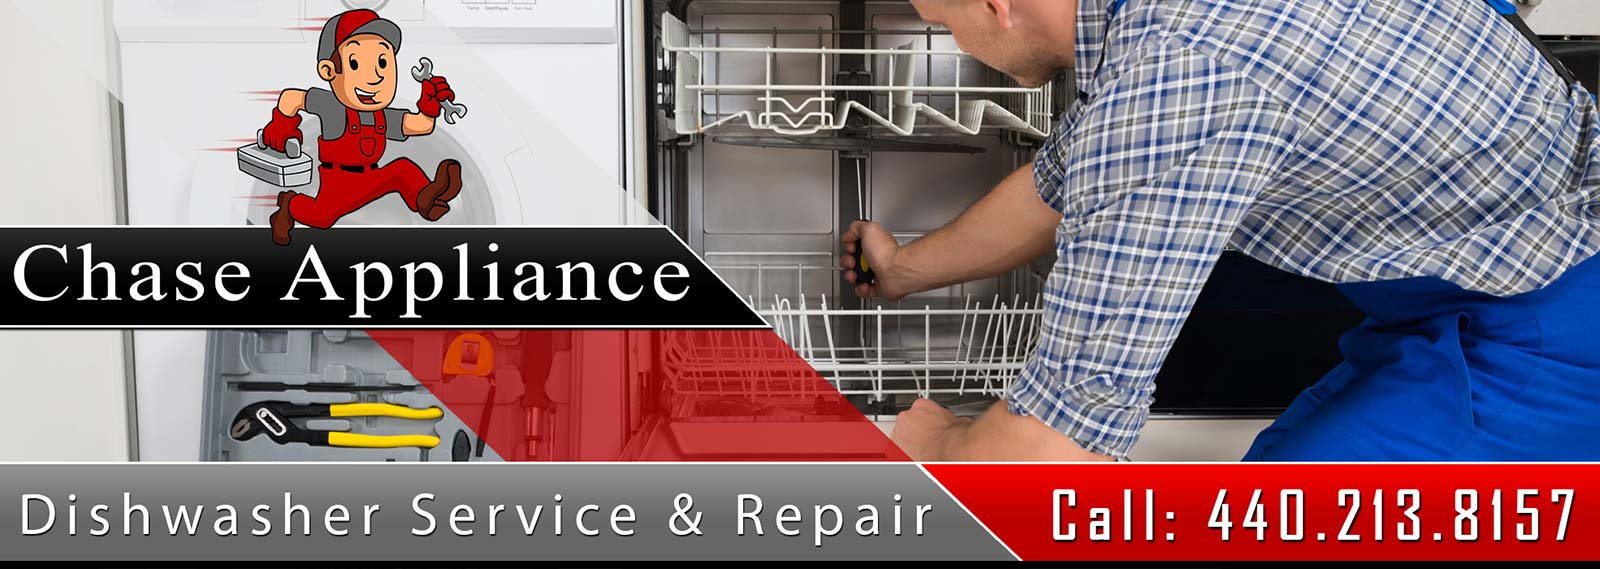 Residential Dishwasher Repair and Service in Northern